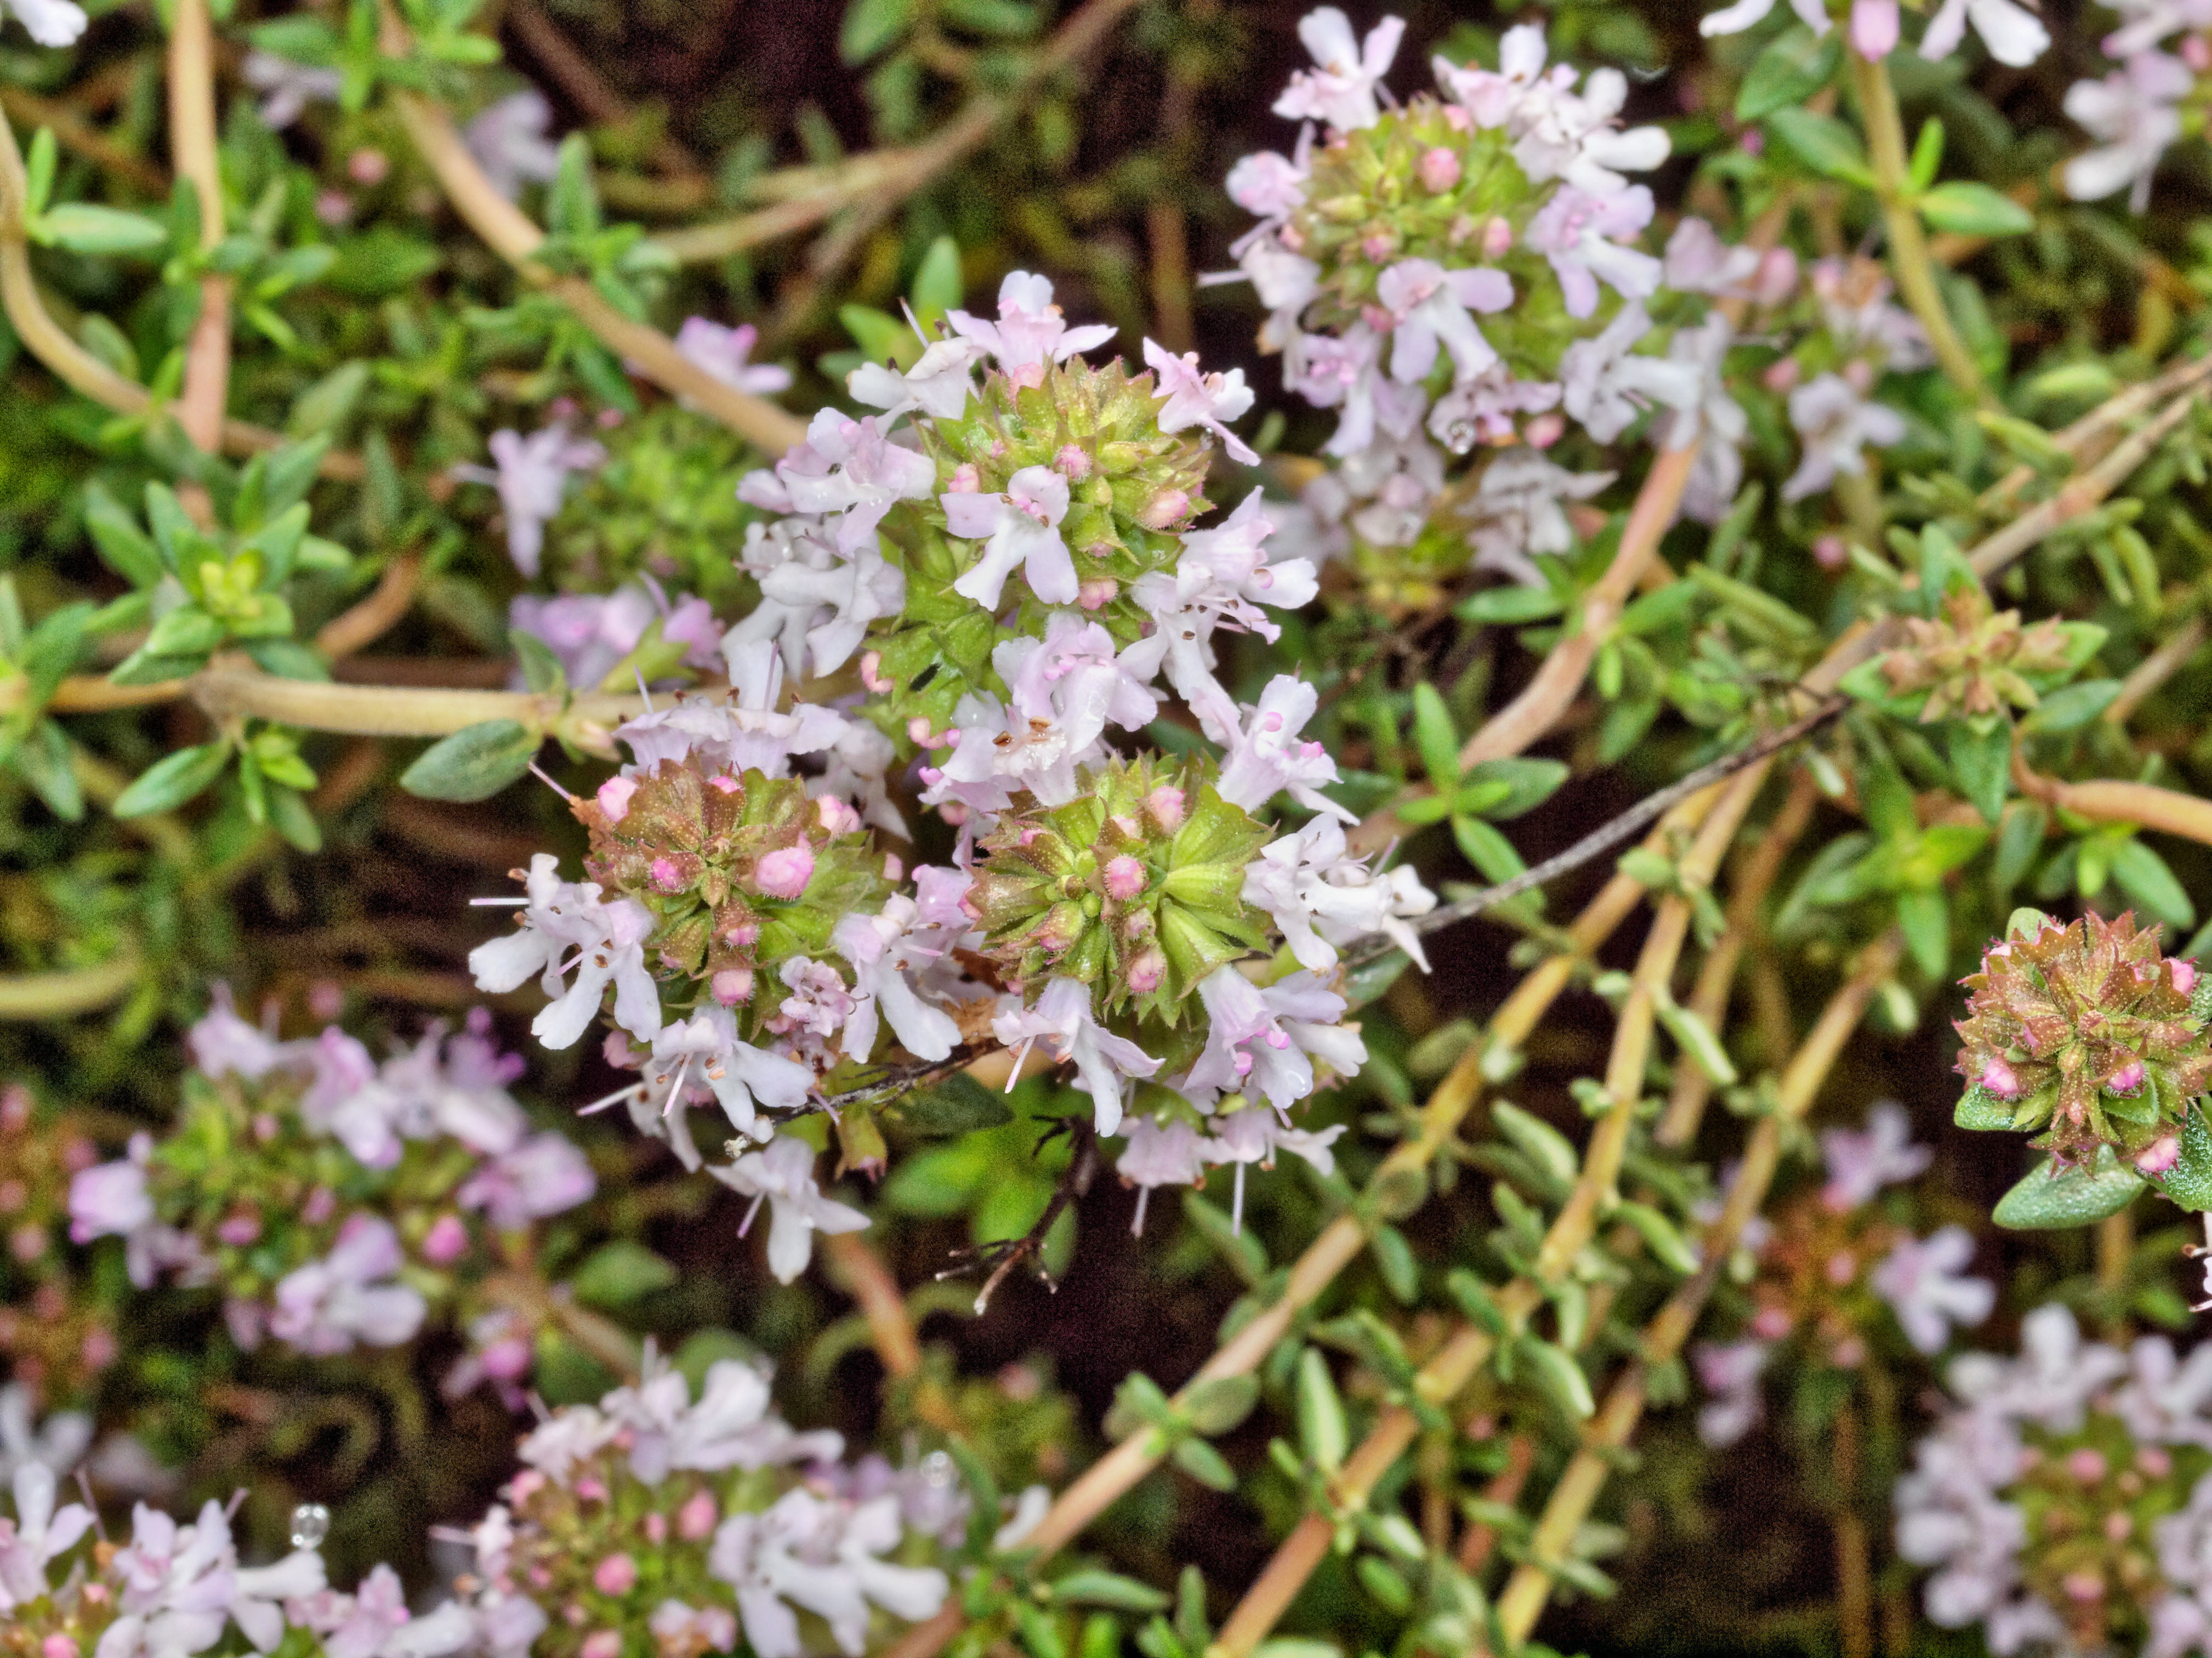 This should be Thyme-2.jpeg.  Is it missing?